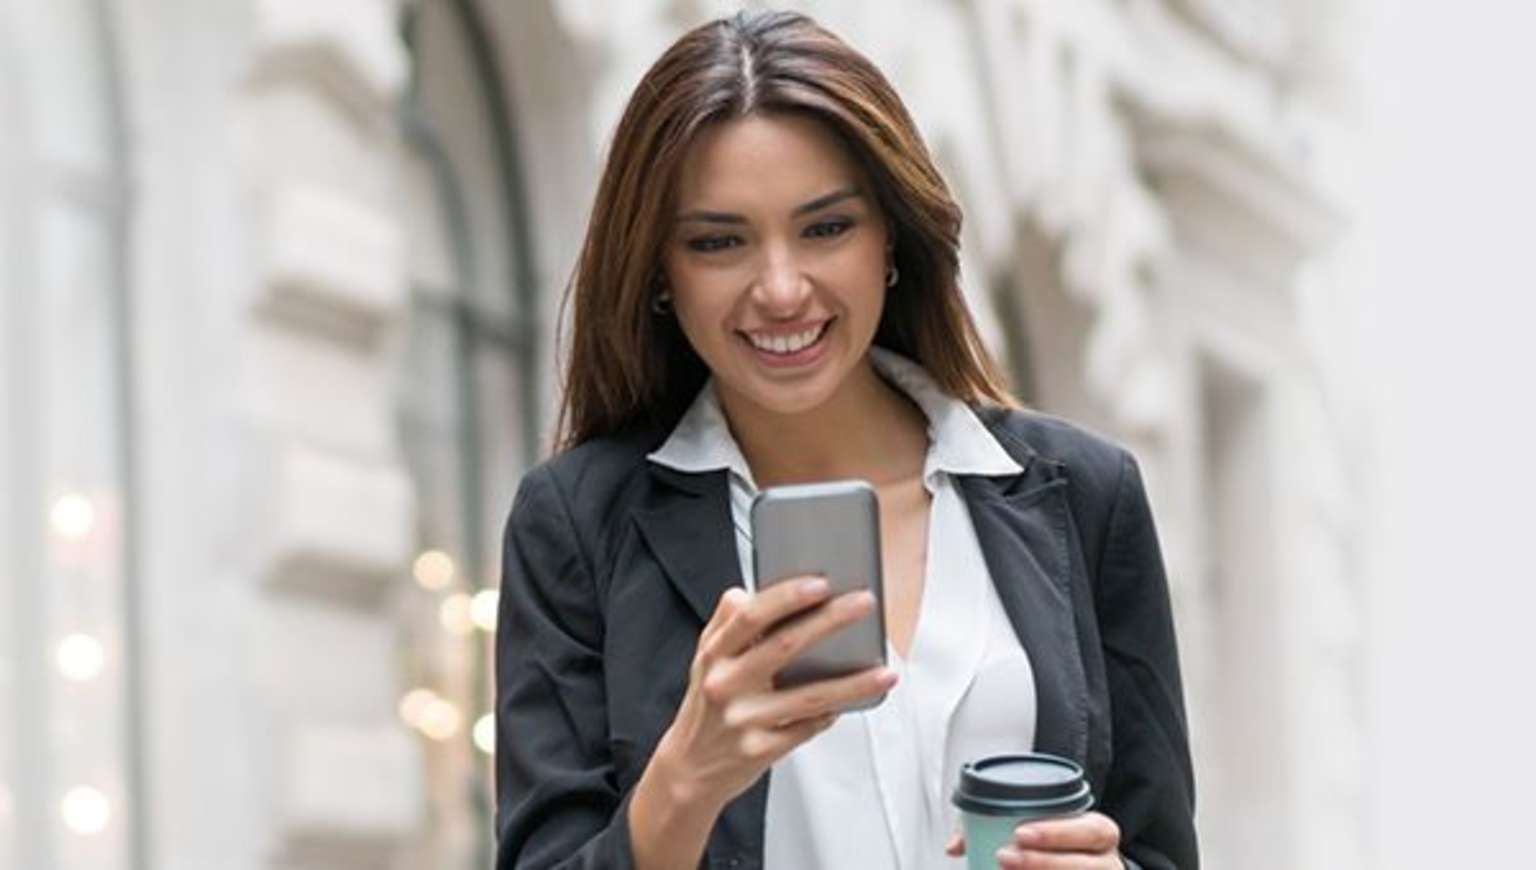 See how easy it is to use the DocuSign eSignature app